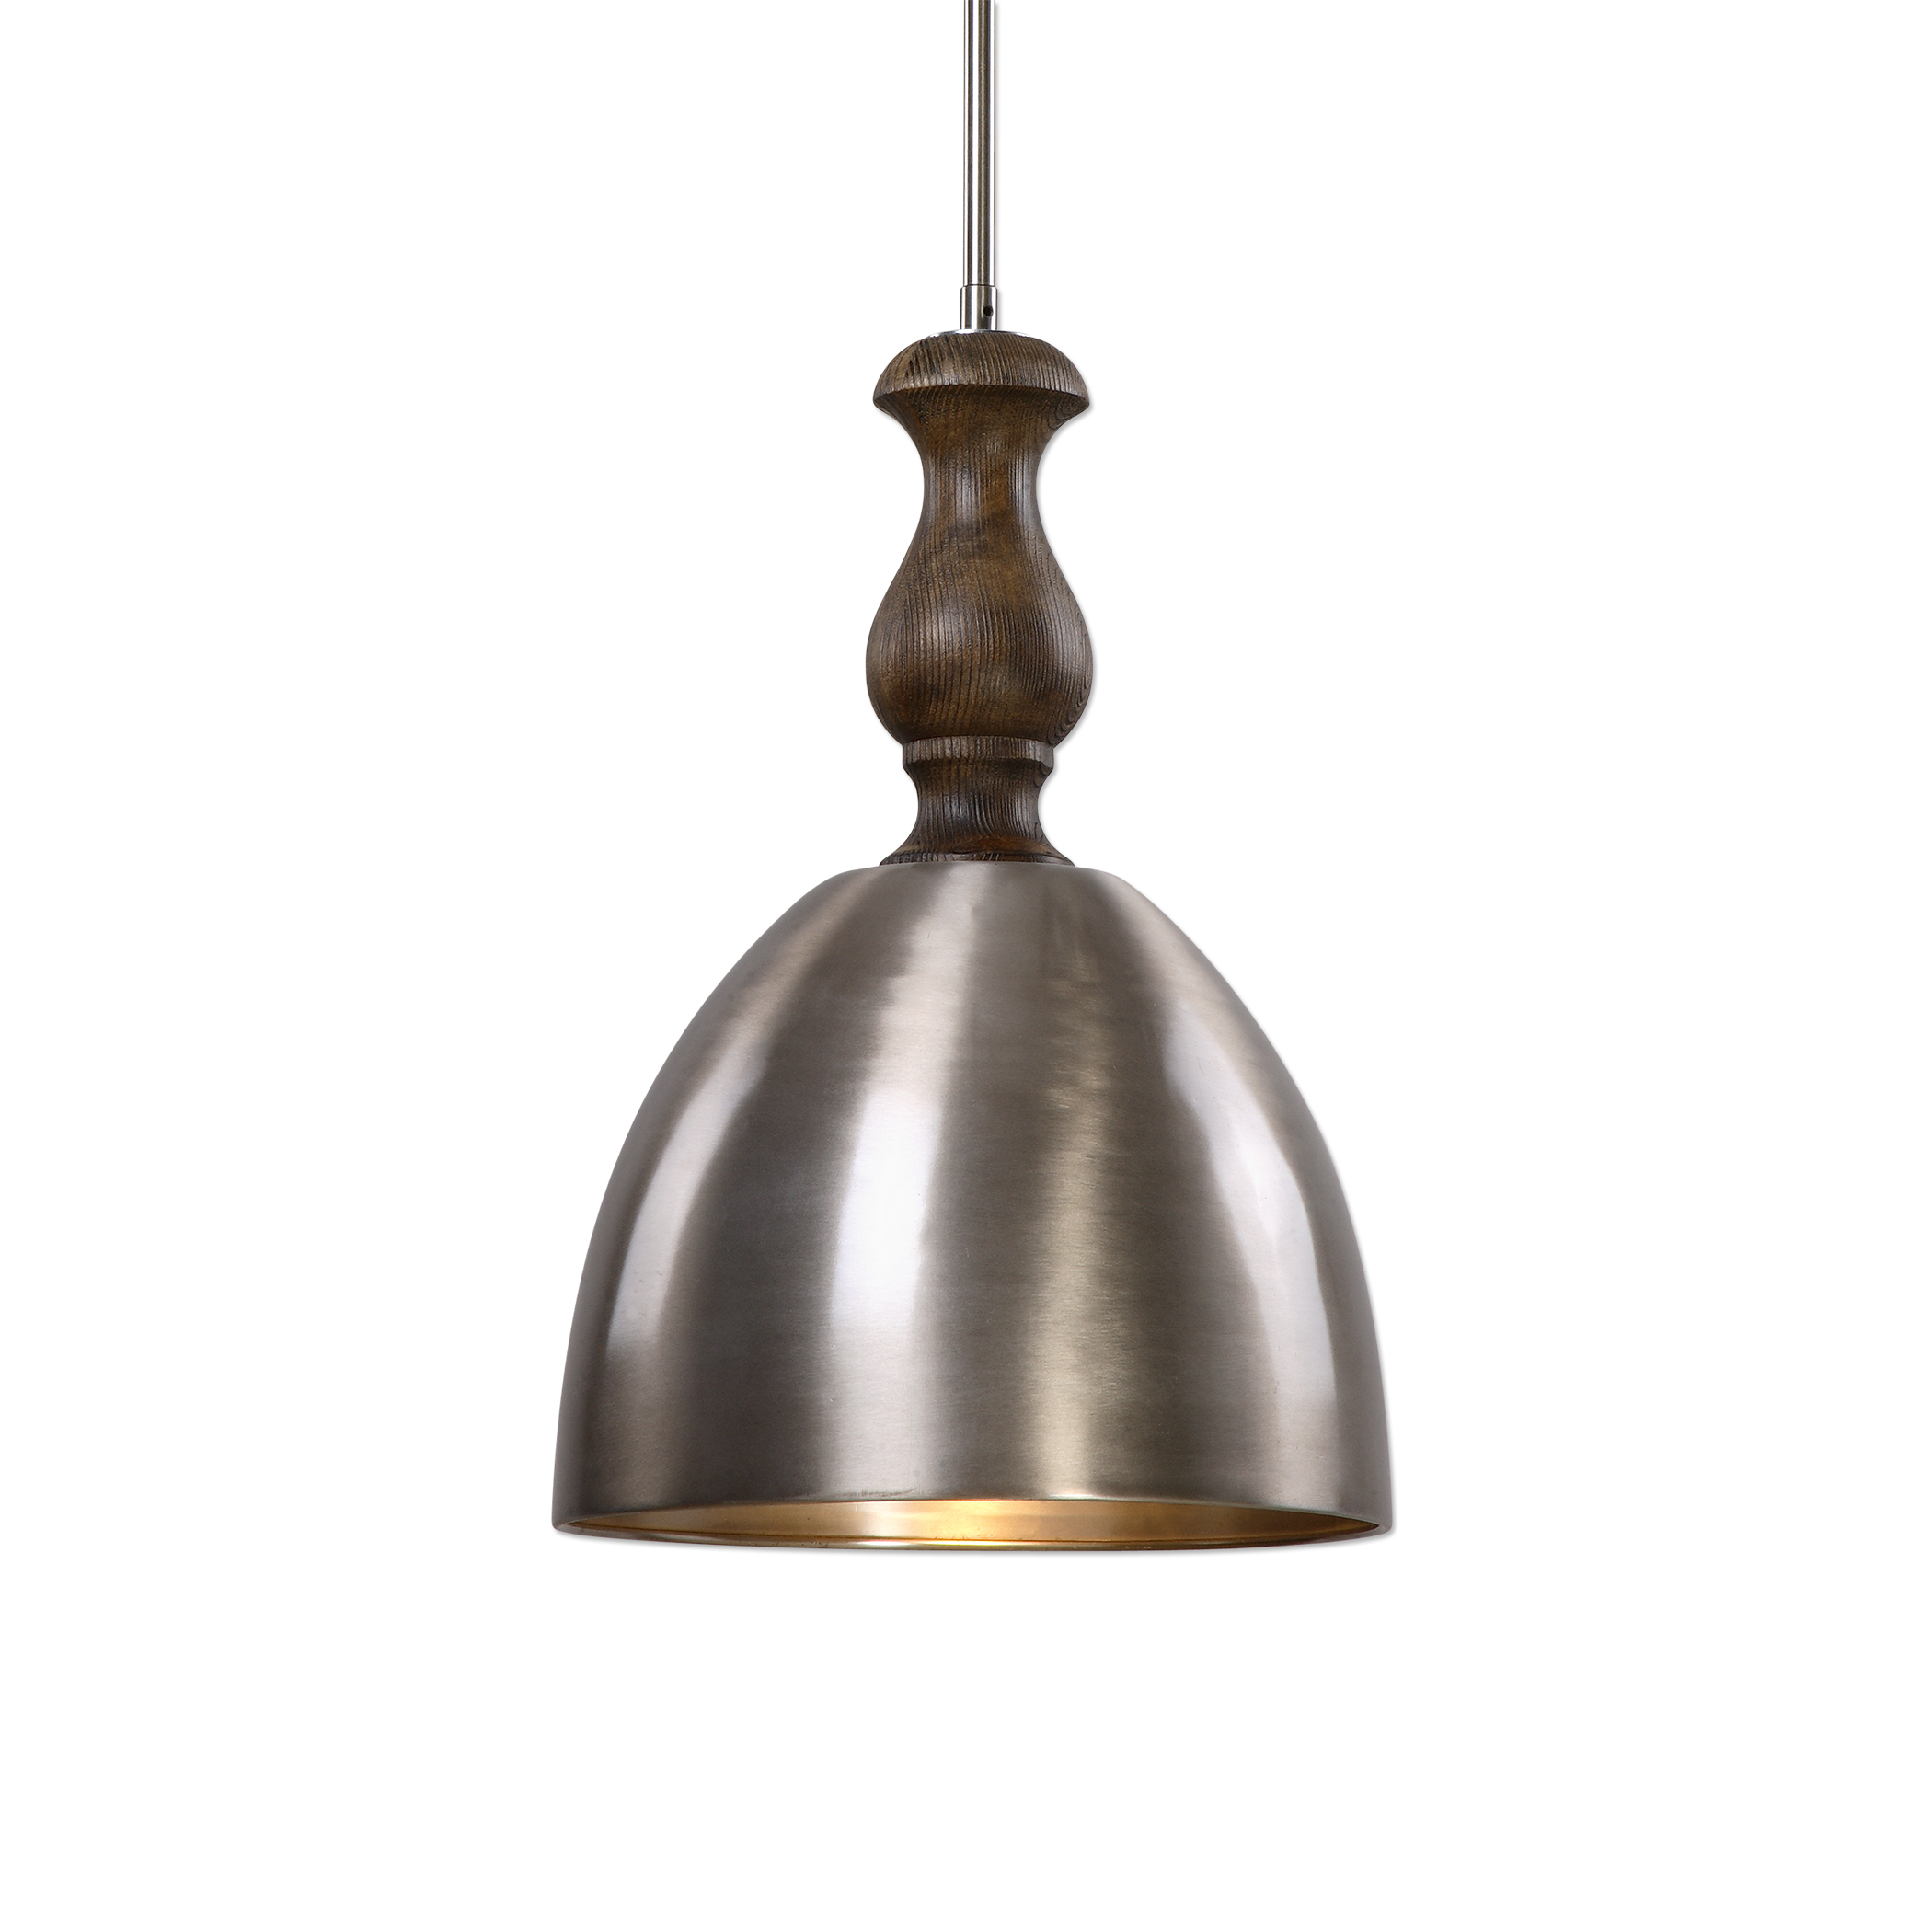 Uttermost Lighting Fixtures Luna 1 Light Aluminum Mini Pendant - Item Number: 22078